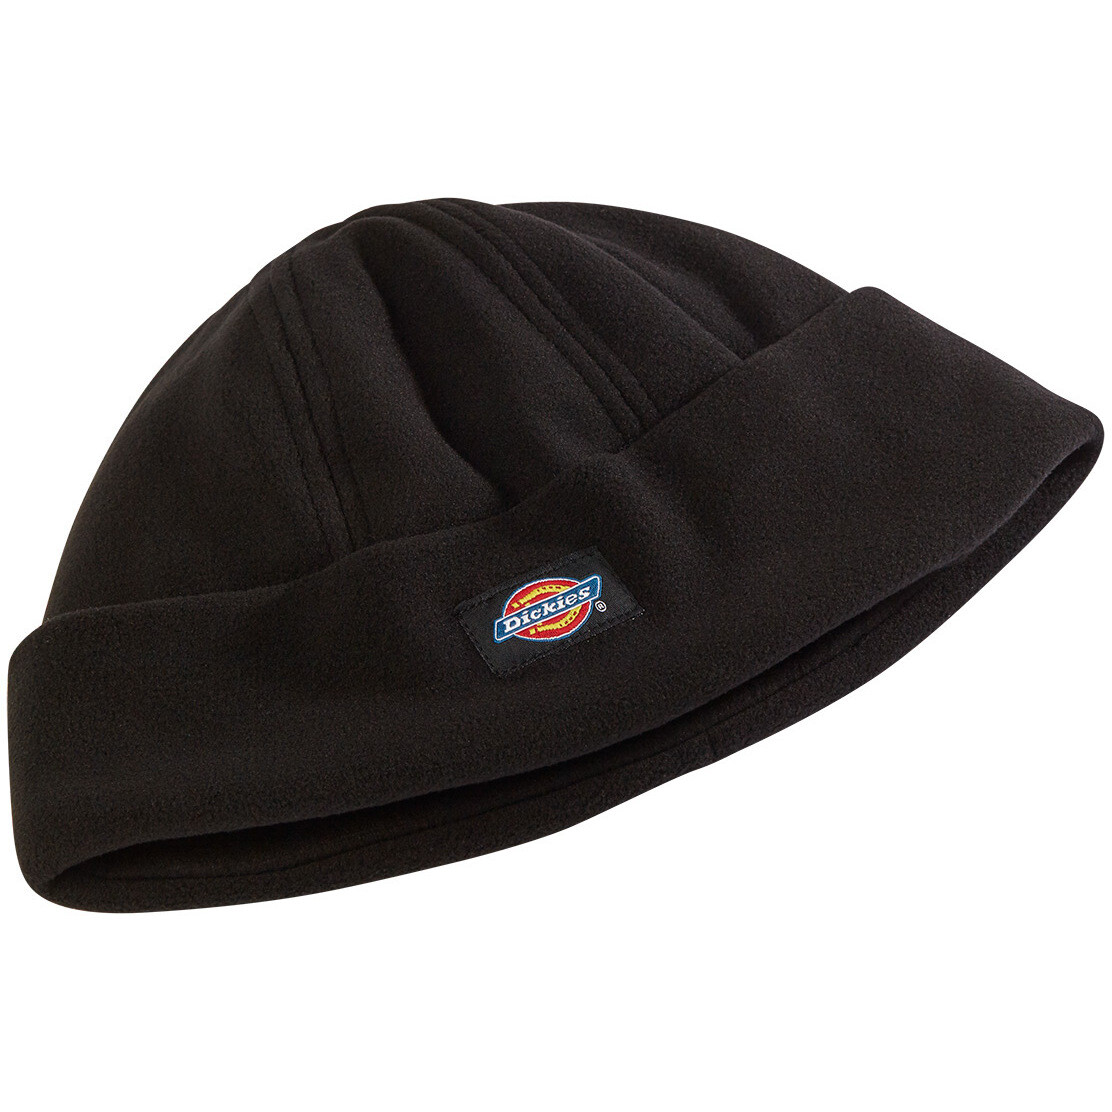 09d88c5967720 Dickies HA100 Docker Hat Black HA100 from Lawson HIS